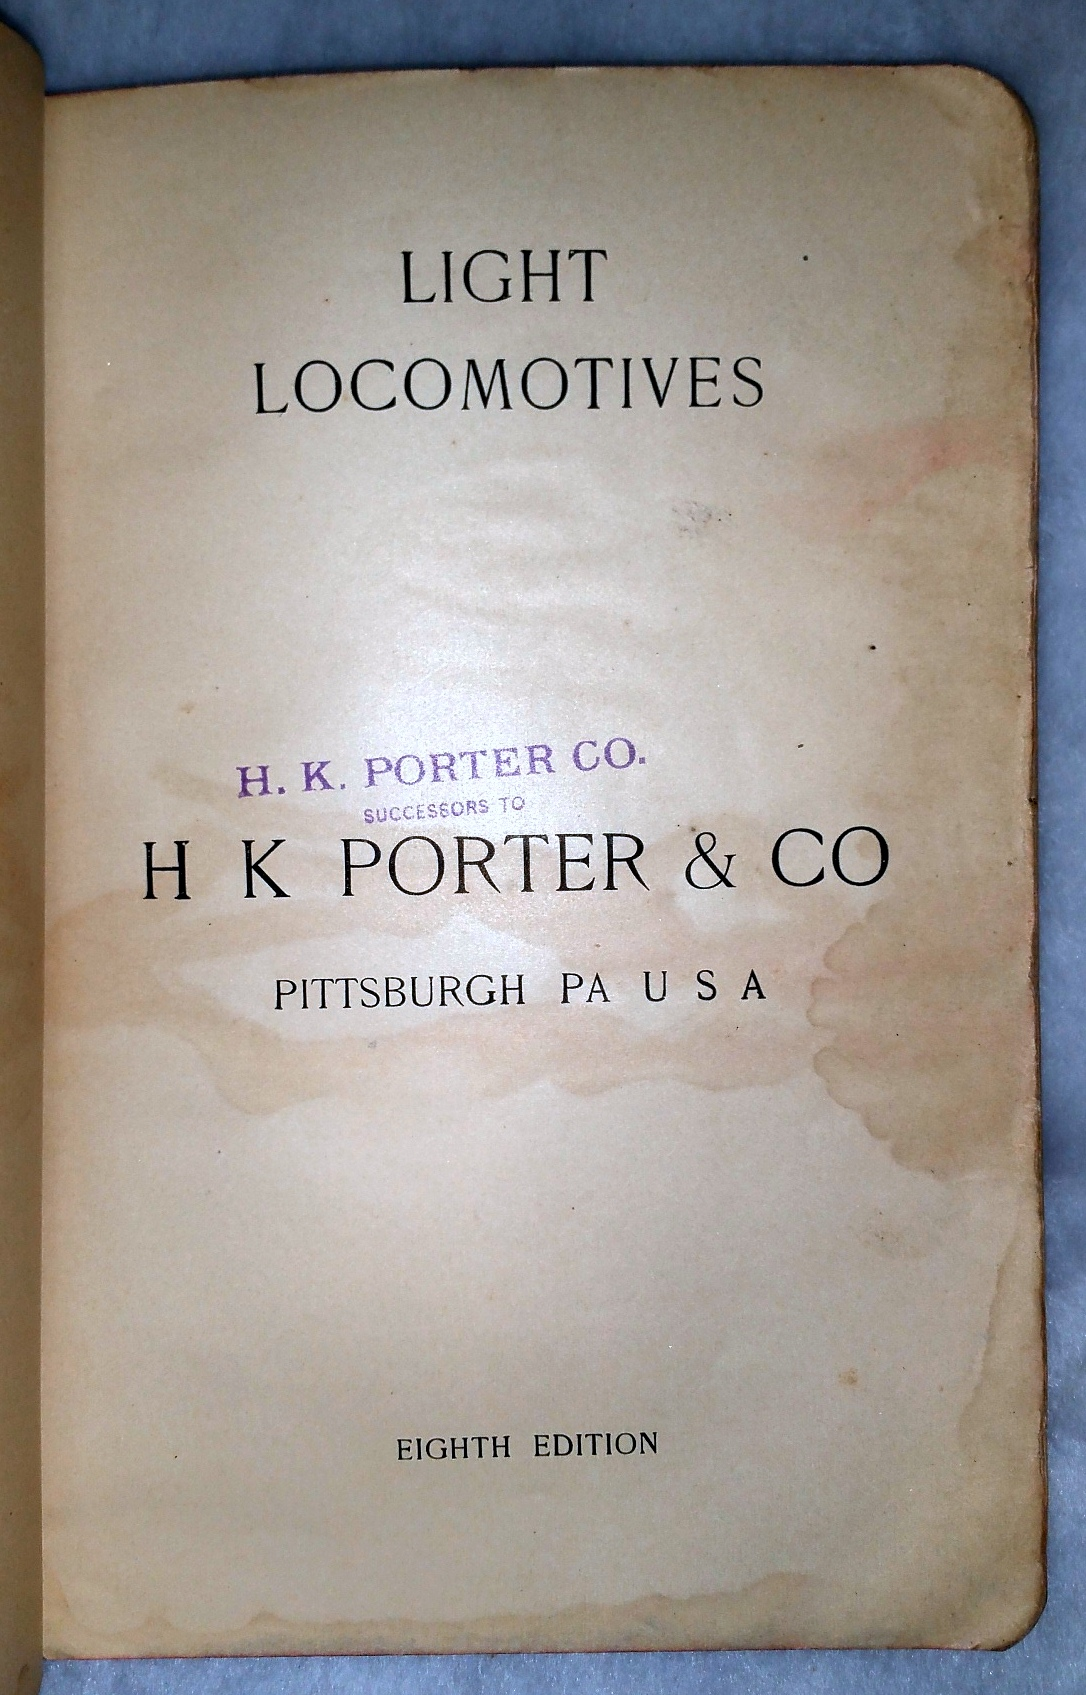 Image for Light Locomotives (H K Porter & Co. / H. K. Porter Co. catalogue, Eighth Edition